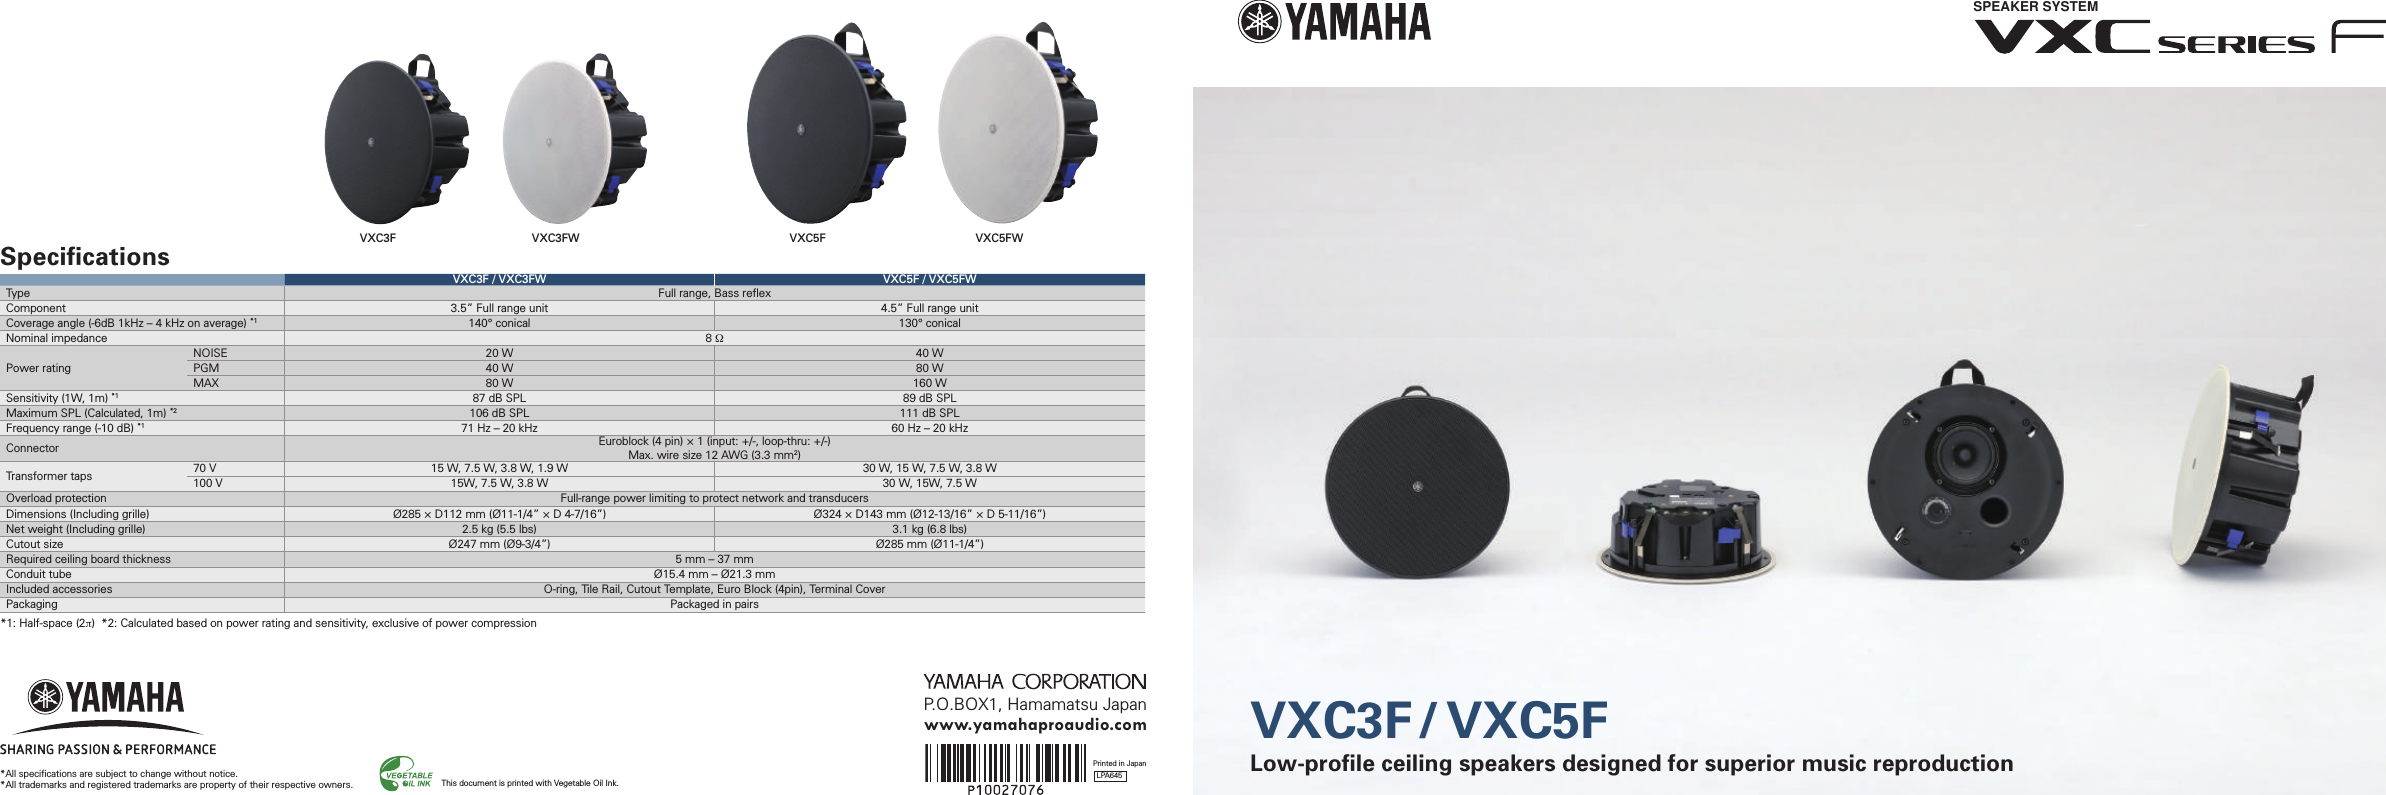 Yamvxc3fw Yamaha Speaker System Vxc Series F User Manual Yam Wiring Diagram